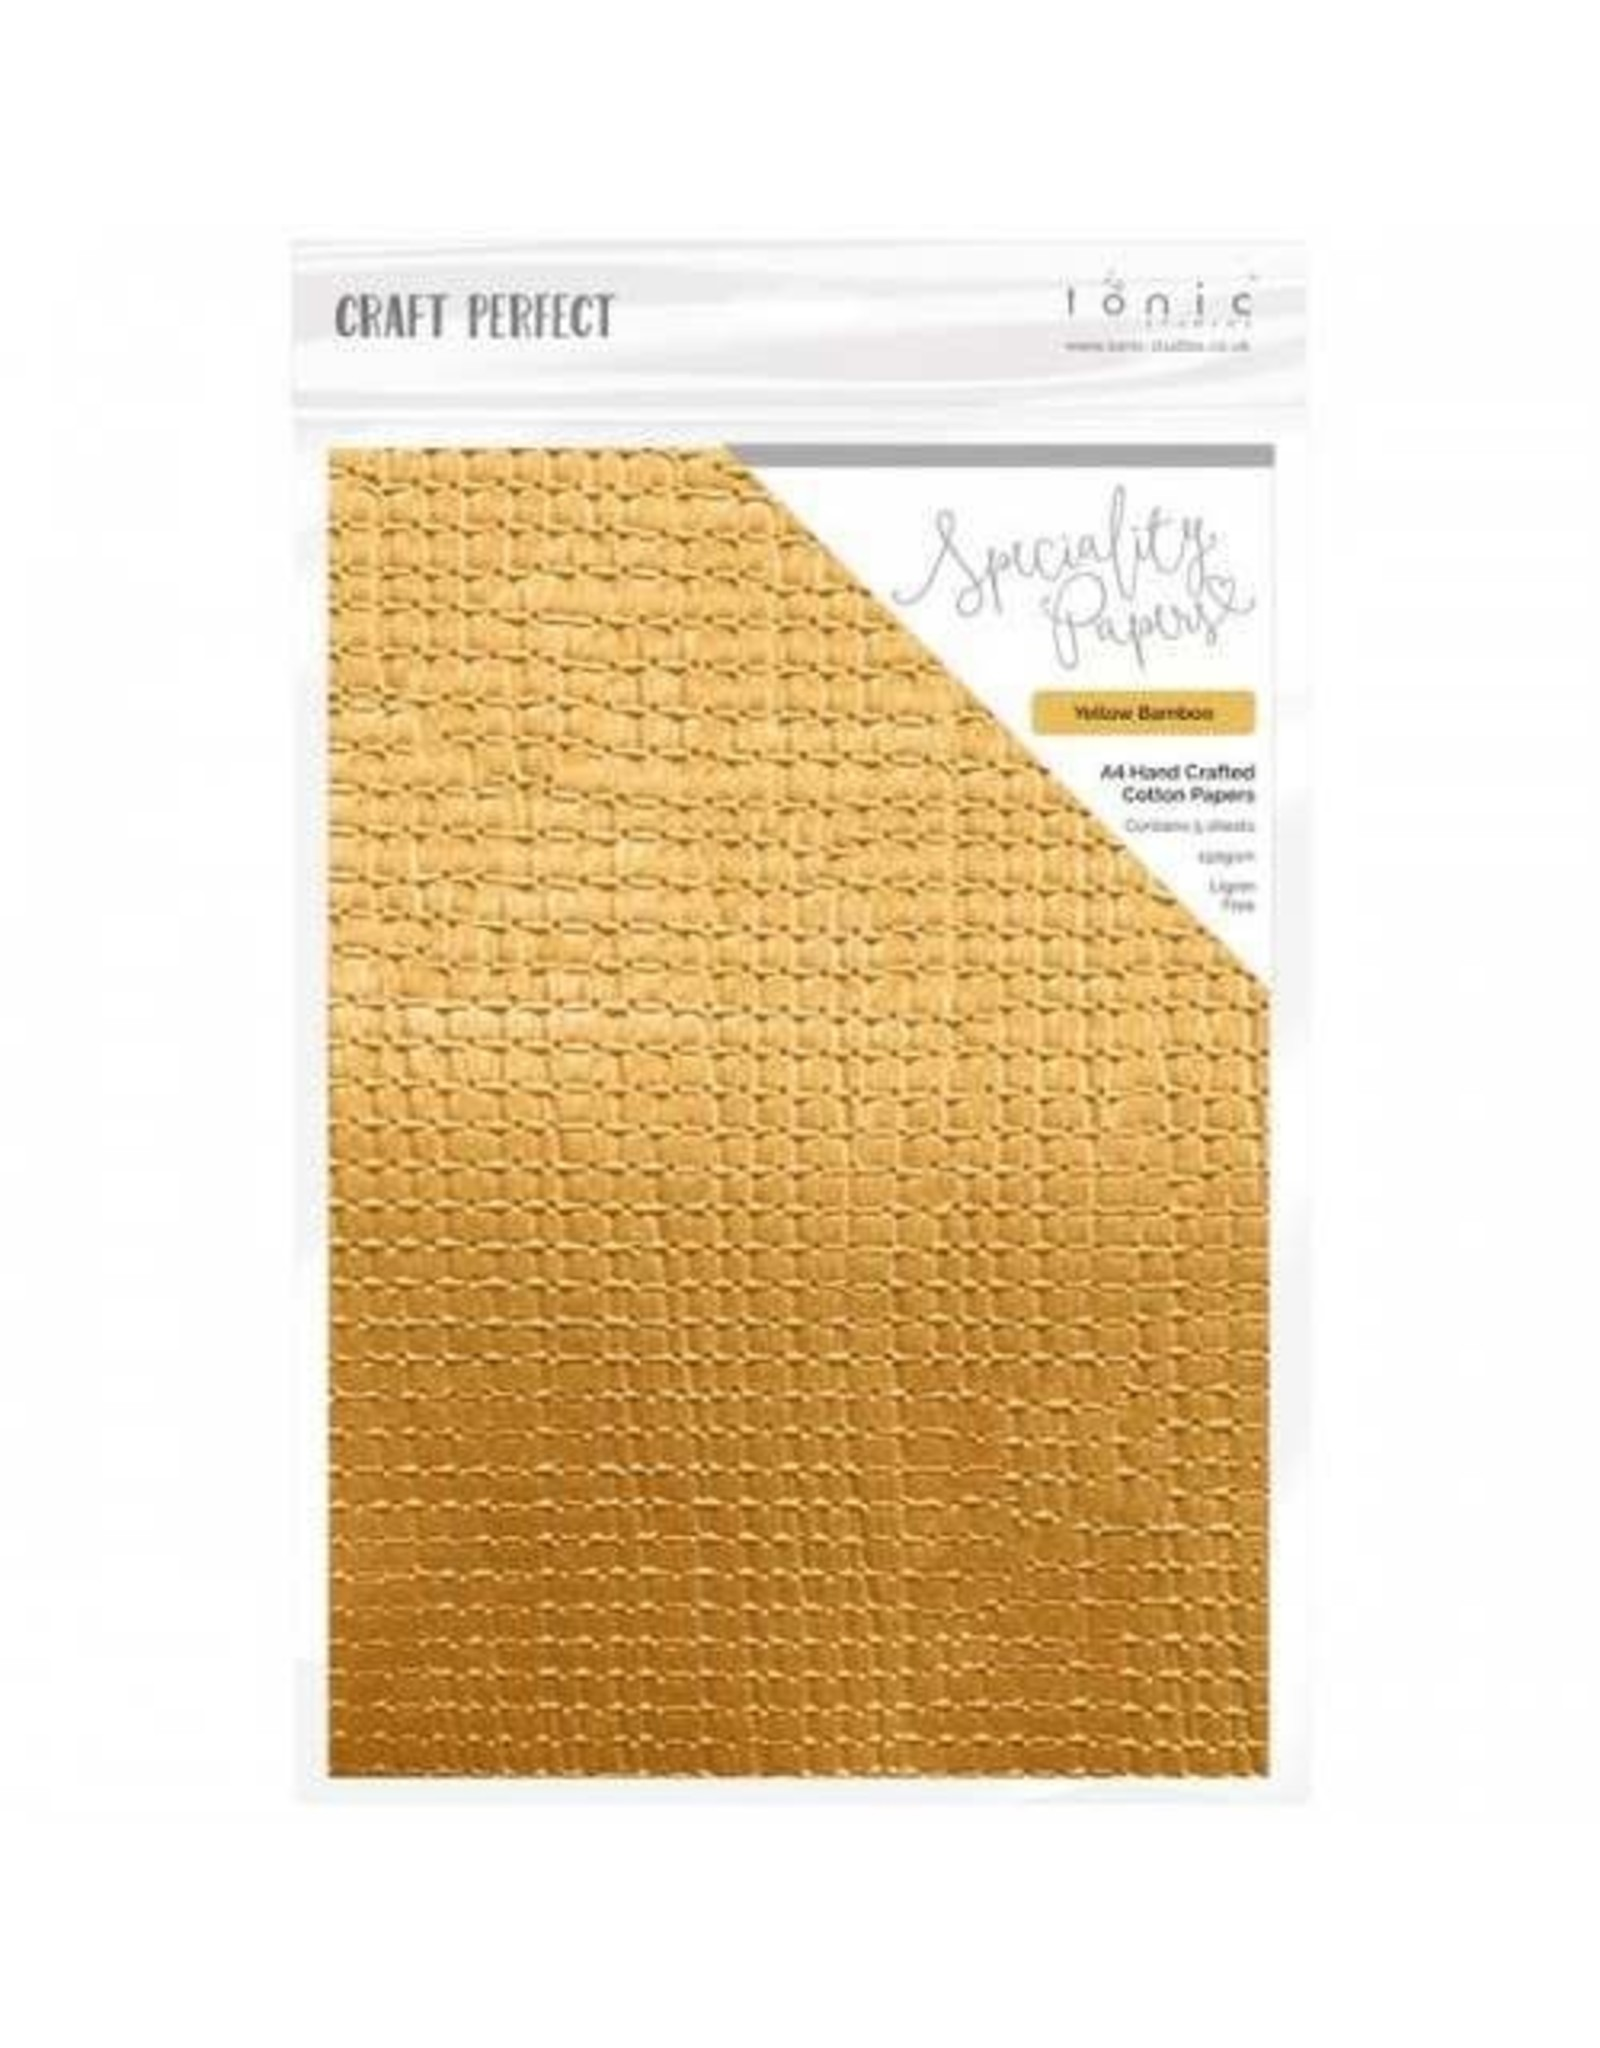 Craft Perfect Yellow Bamboo - A4 Handcrafted Cotton